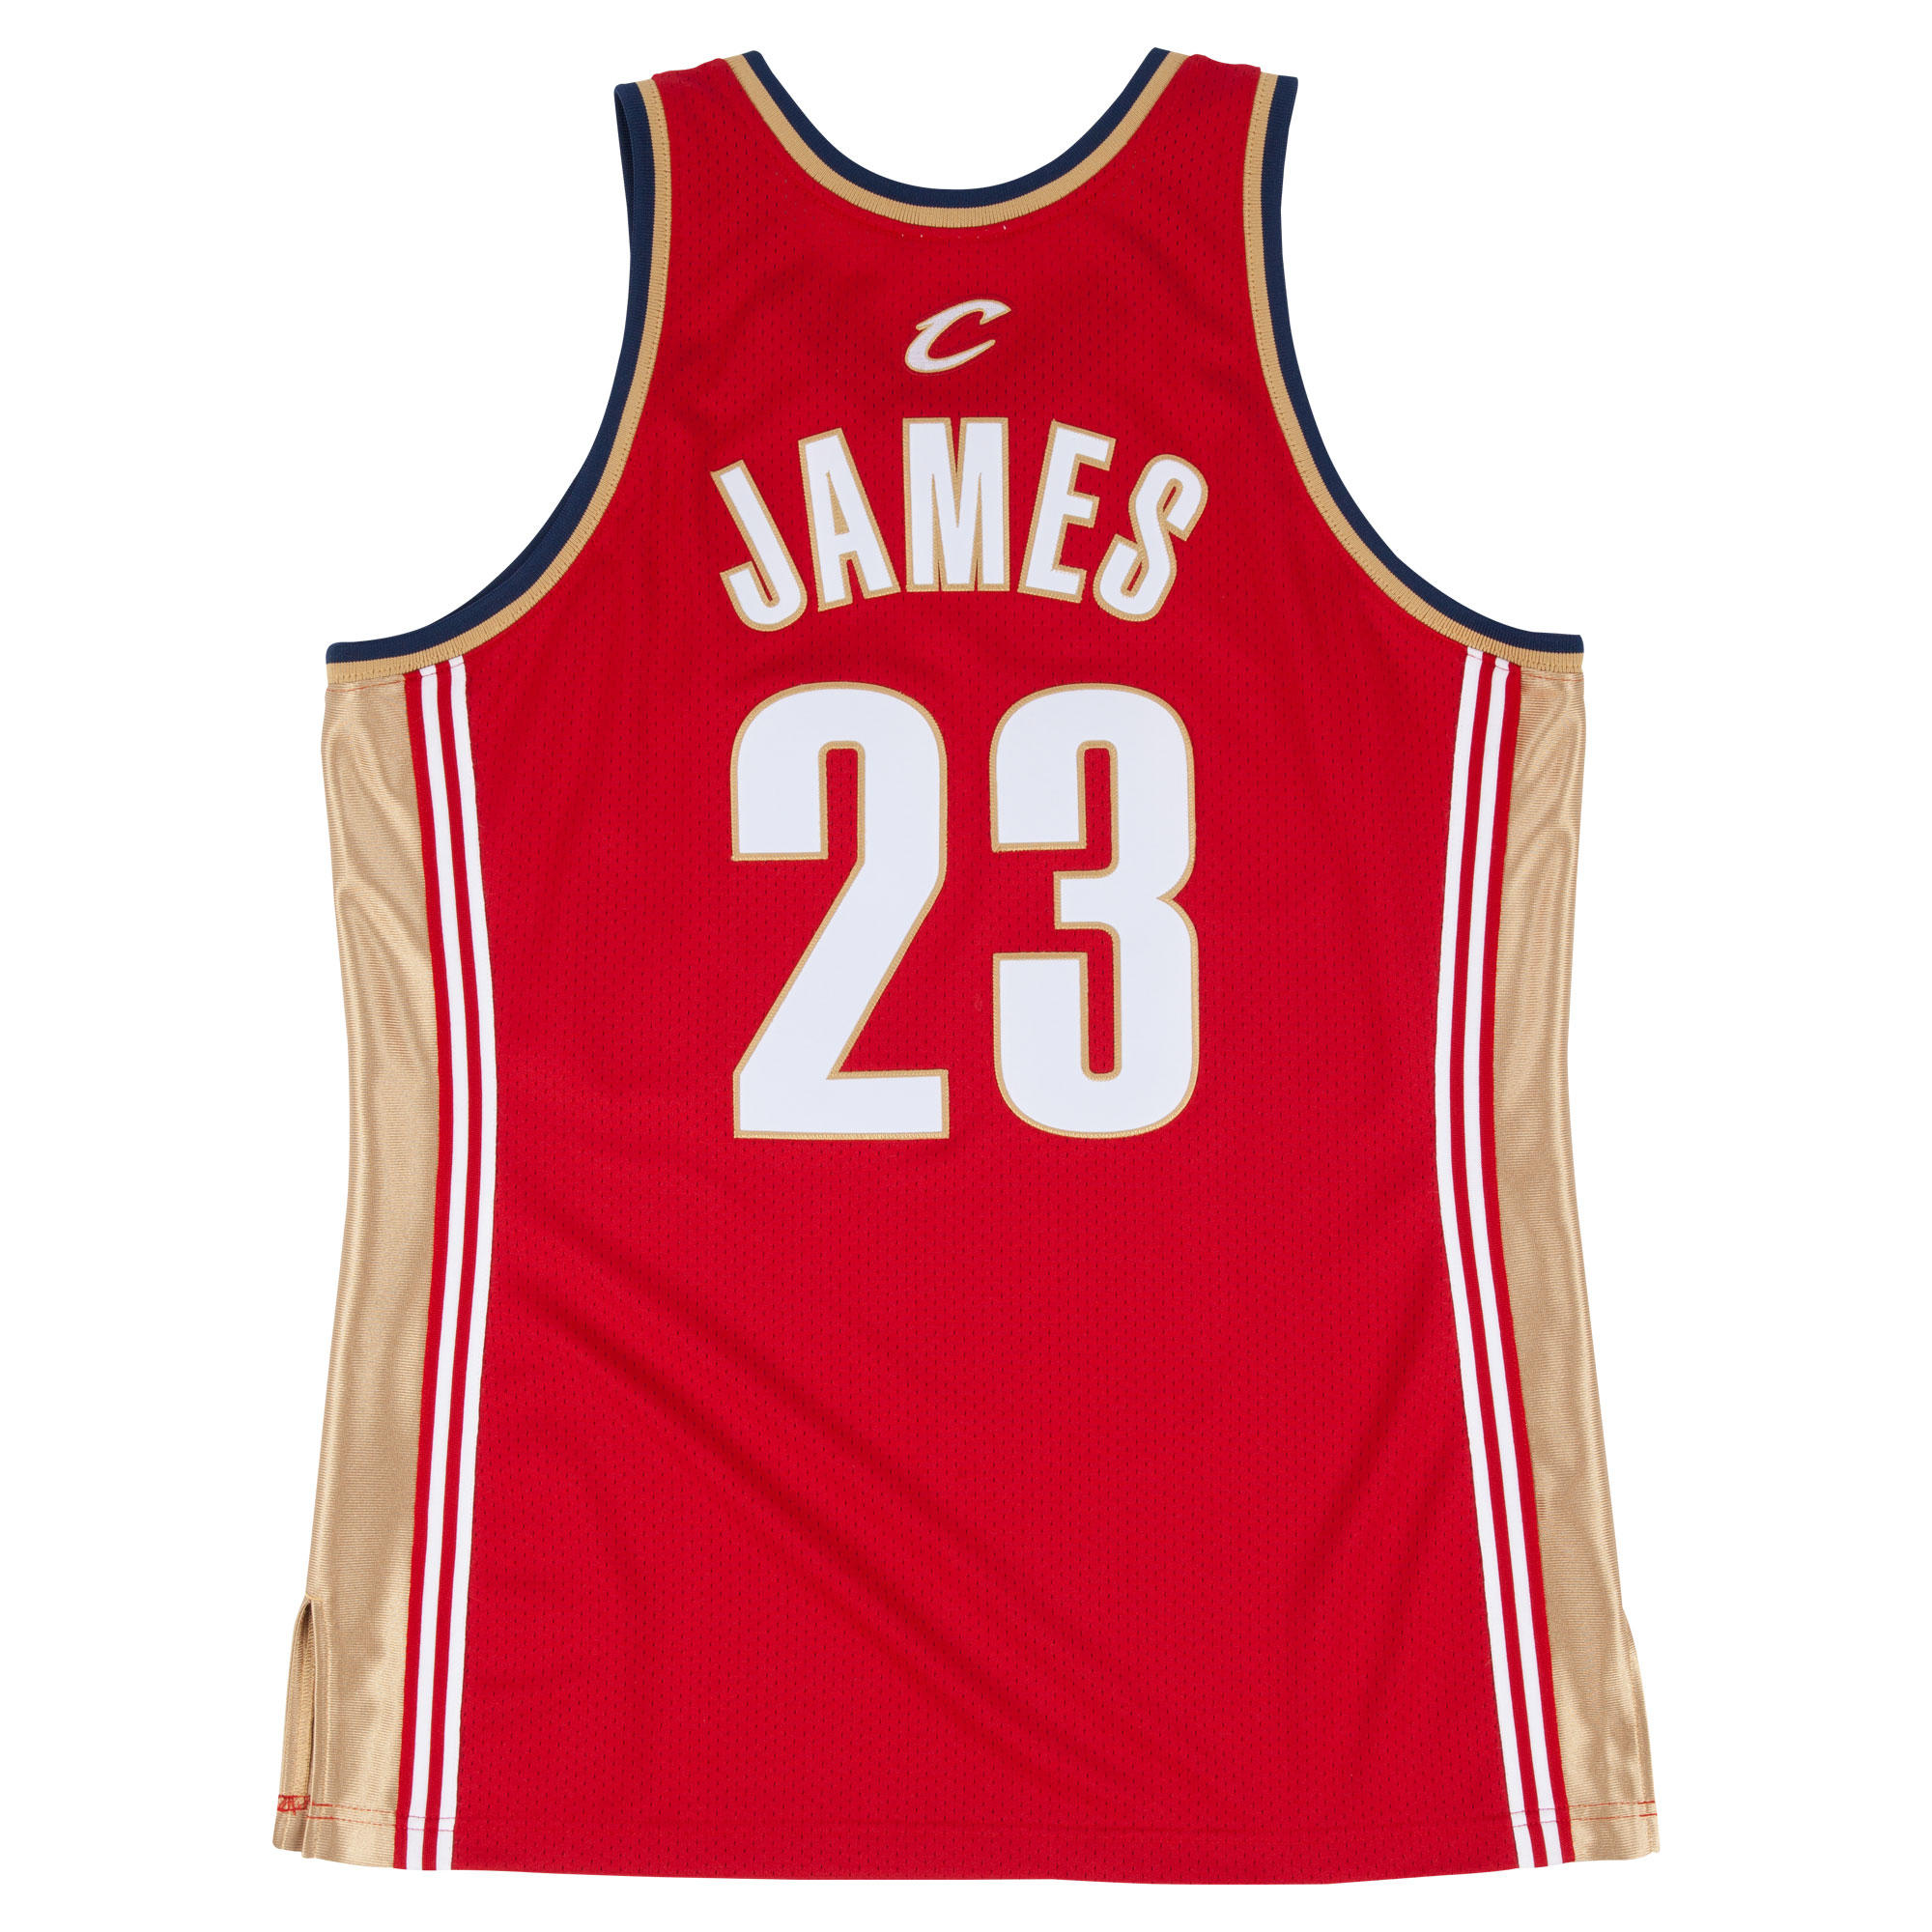 low priced 1b89e 52b73 2003-04 Lebron James Authentic Jersey Cleveland Cavaliers ...